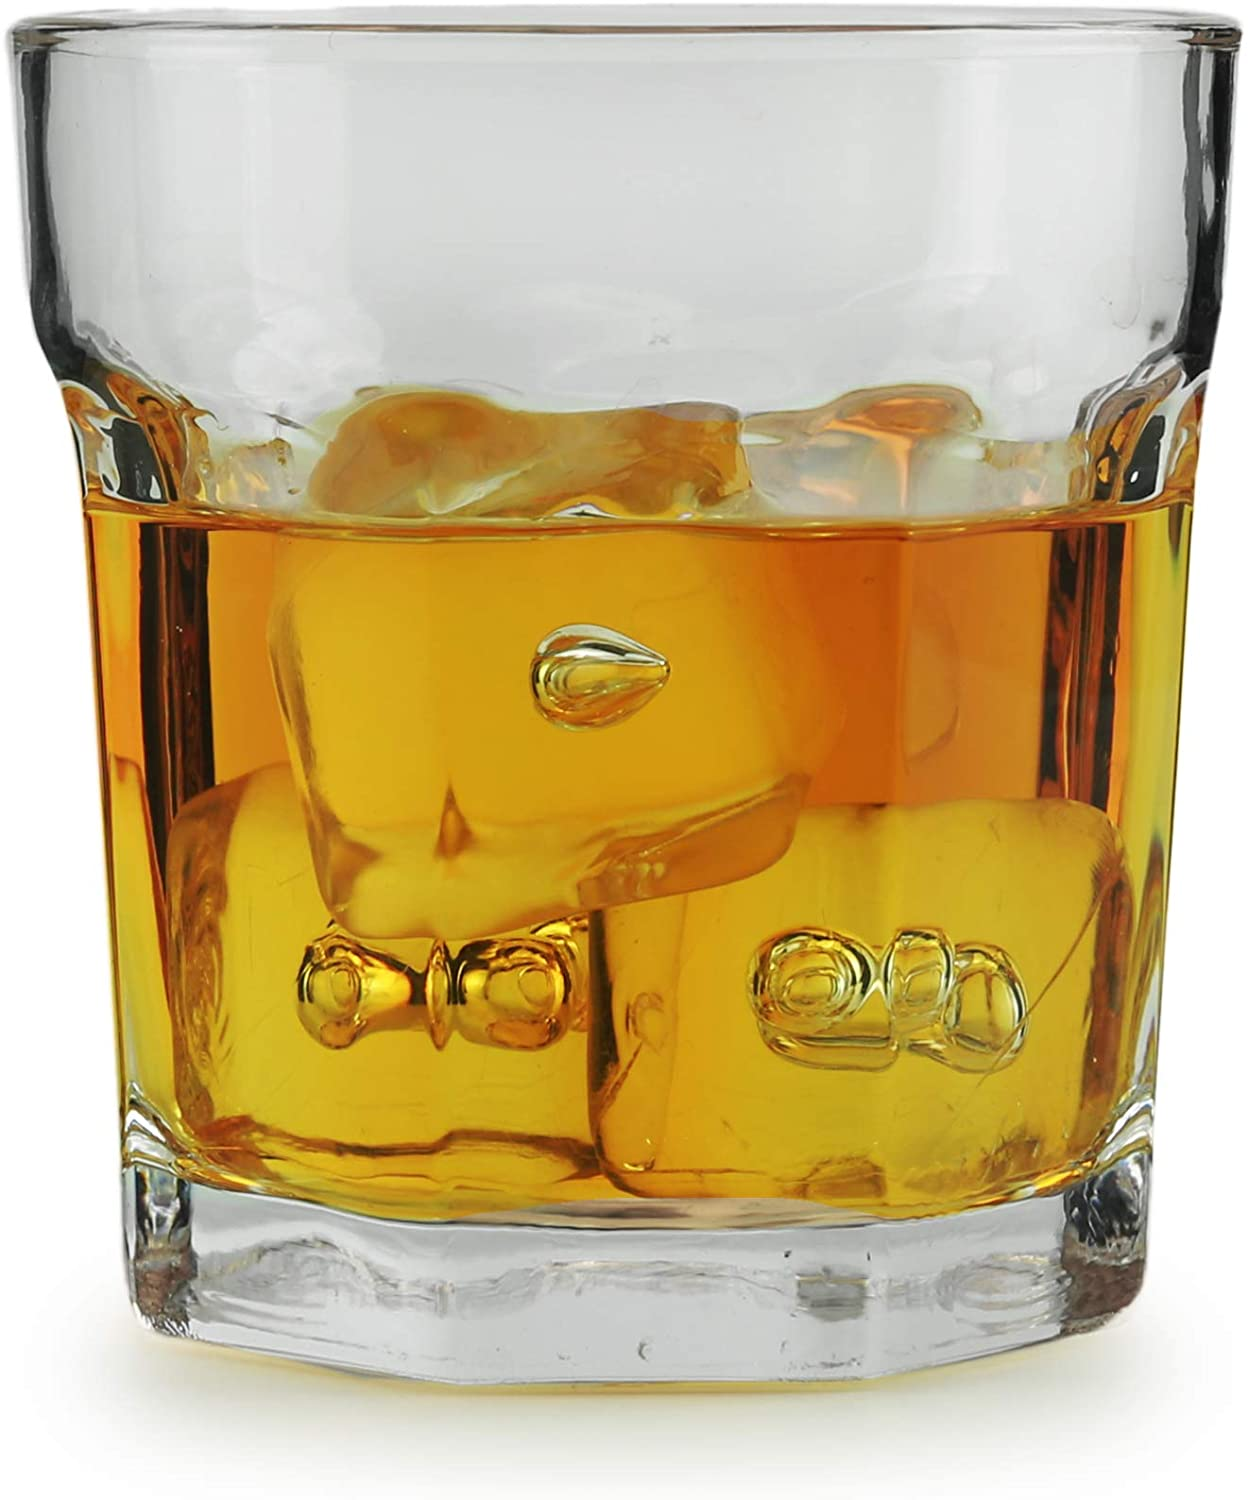 Circleware Heavy Base Whiskey Glass, Set of 4, Home & Kitchen Party Dining Entertainment Beverage Drinking Glassware Cups for Water, Juice, Beer Bar Liquor Decor, 10.4 oz